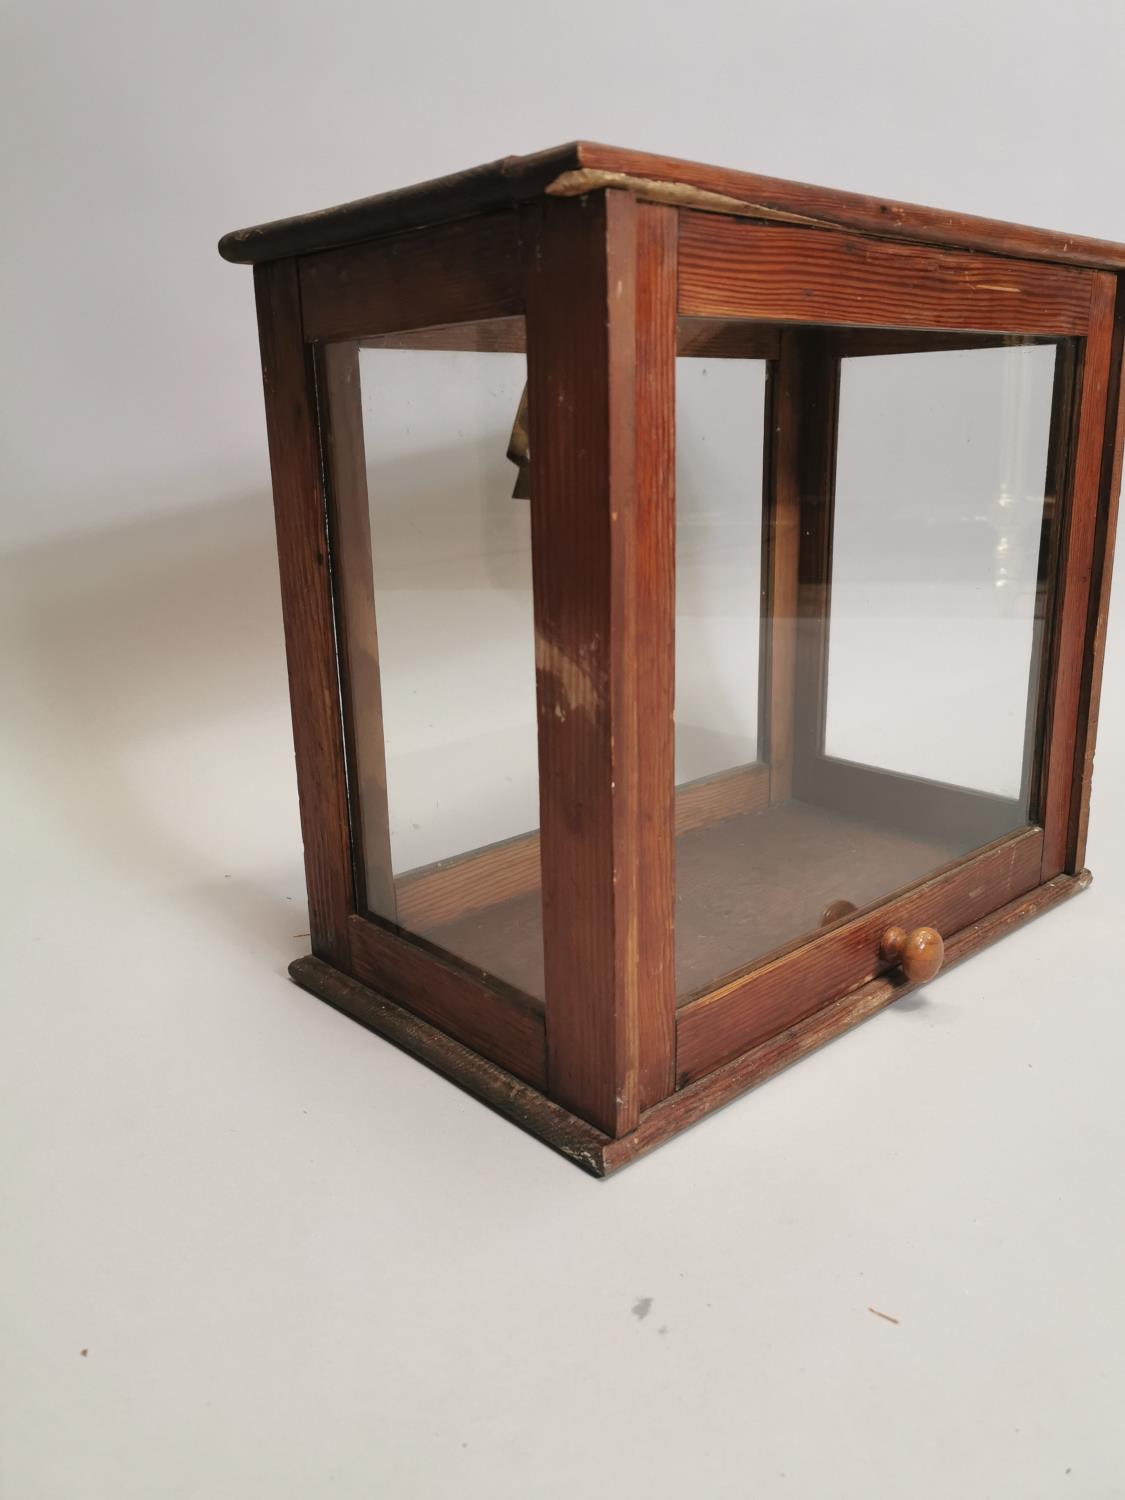 Early 20th. C. glazed pine display cabinet - Image 3 of 7